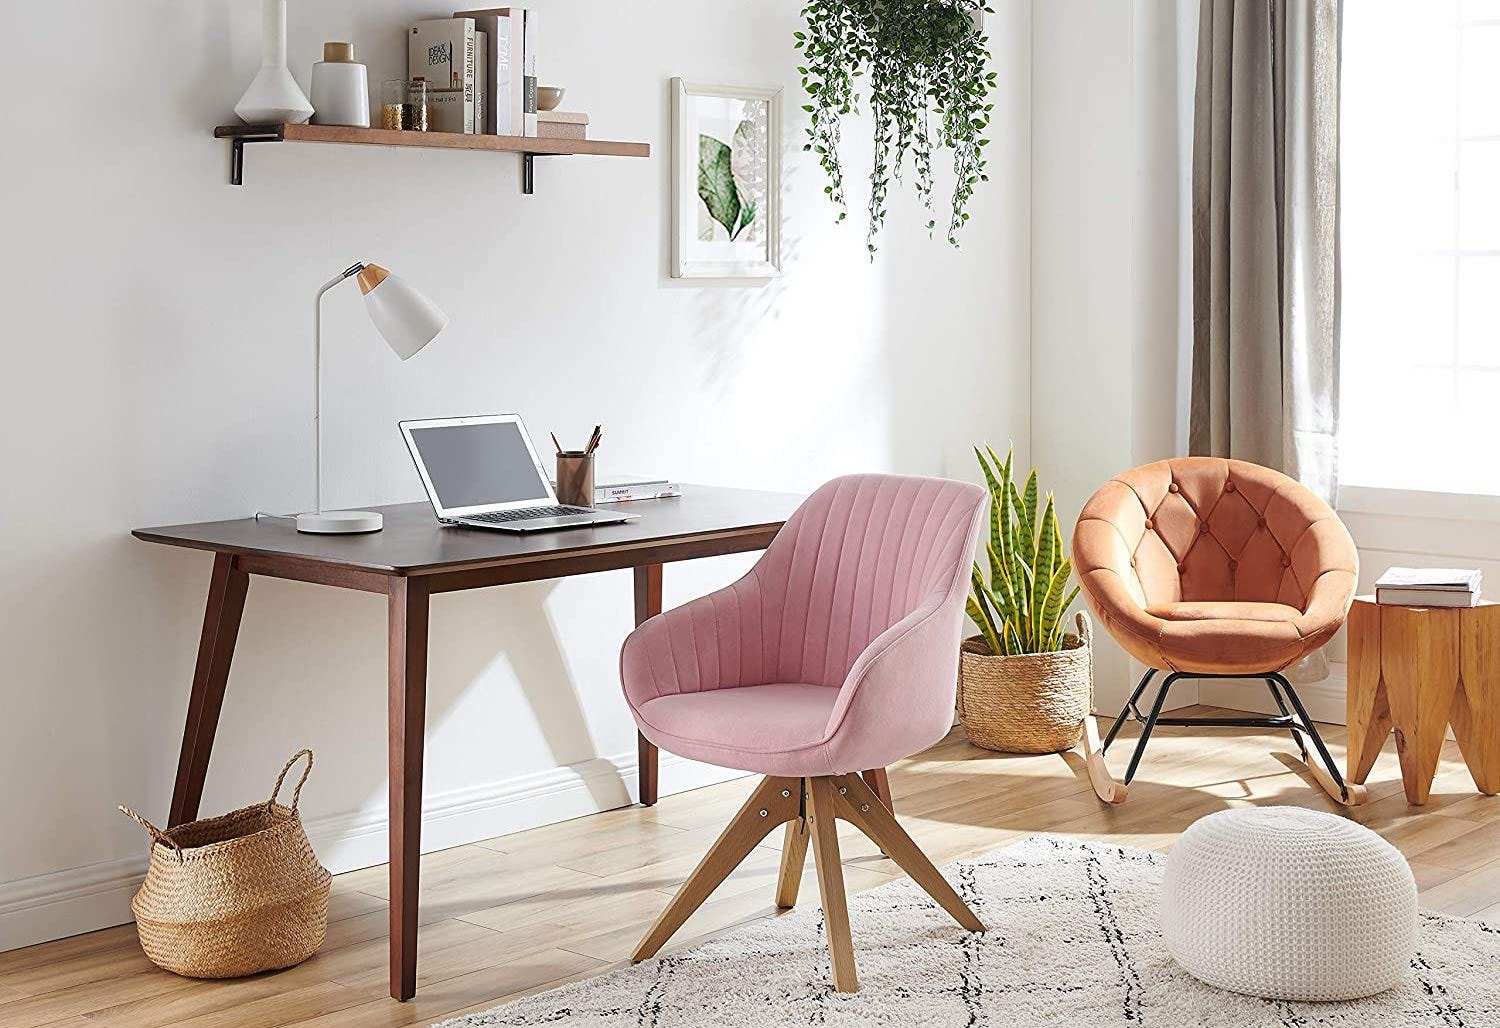 The Art Leon Mid-Century Modern Swivel Accent Chair in Pink-New sitting at a desk.